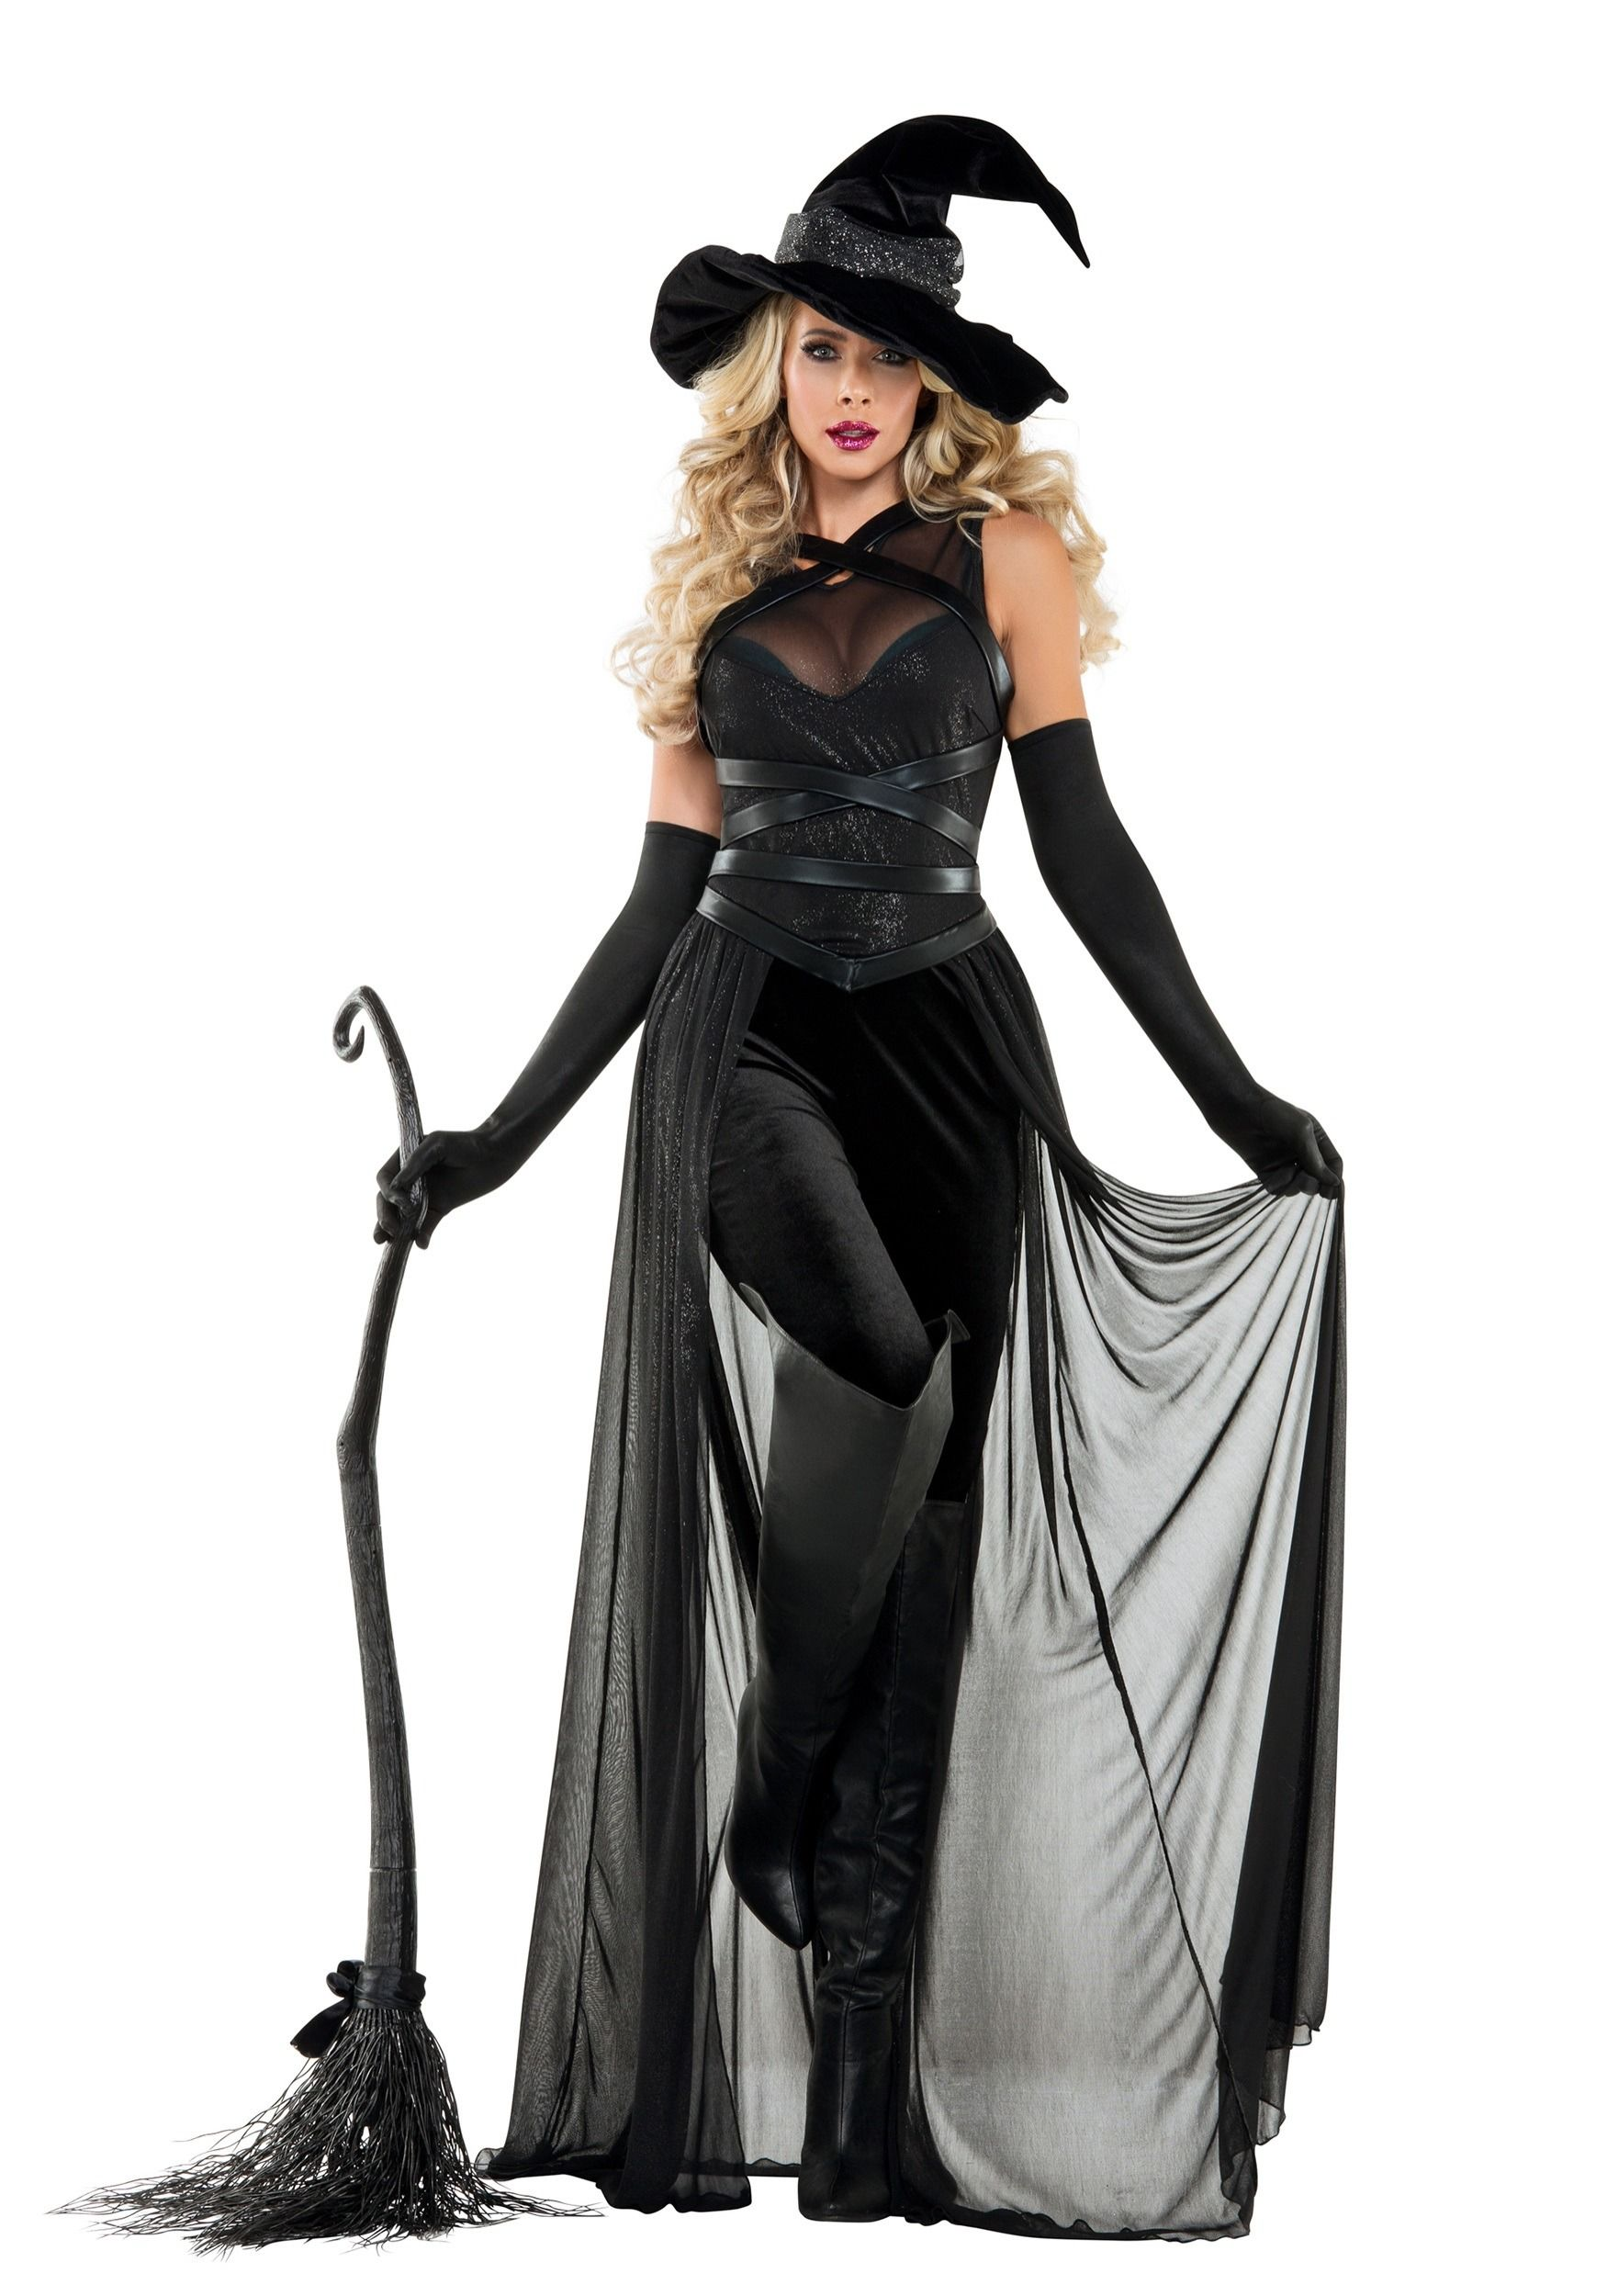 Women's Raven Witch Costume Costumes for women, Witches